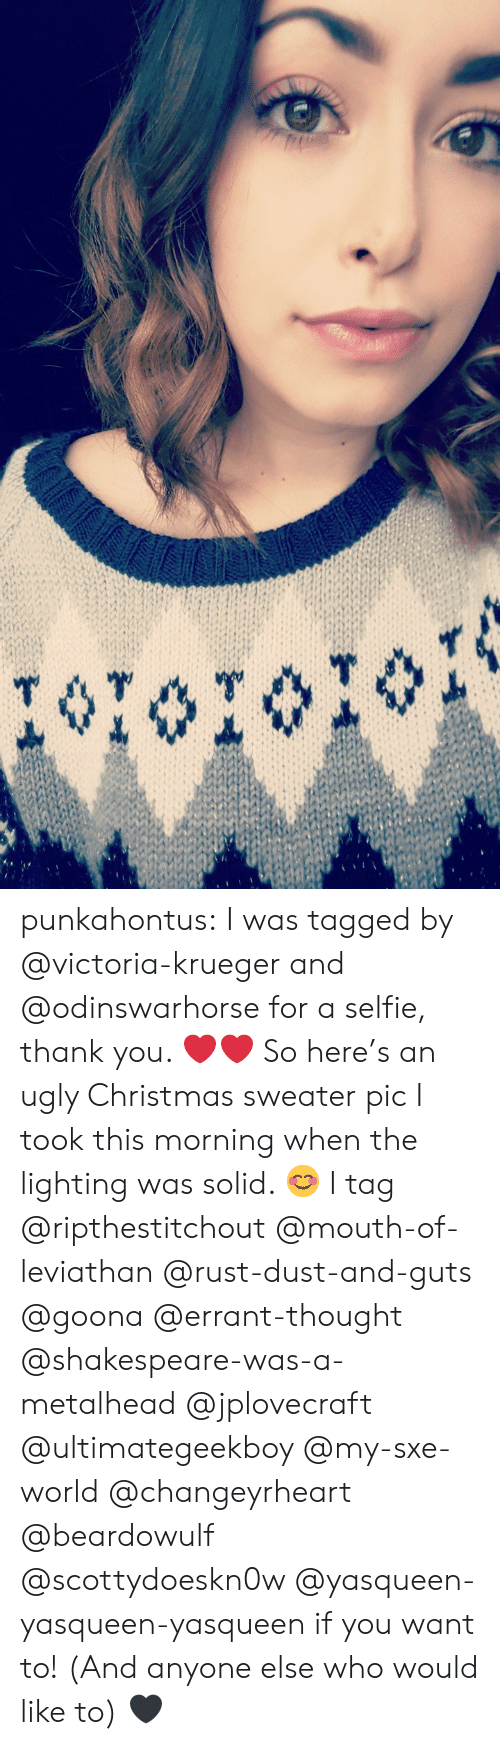 Leviathan: punkahontus:  I was tagged by @victoria-krueger and @odinswarhorse for a selfie, thank you. ❤❤  So here's an ugly Christmas sweater pic I took this morning when the lighting was solid. 😊  I tag @ripthestitchout @mouth-of-leviathan @rust-dust-and-guts @goona @errant-thought @shakespeare-was-a-metalhead @jplovecraft @ultimategeekboy @my-sxe-world @changeyrheart @beardowulf @scottydoeskn0w @yasqueen-yasqueen-yasqueen if you want to! (And anyone else who would like to) 🖤